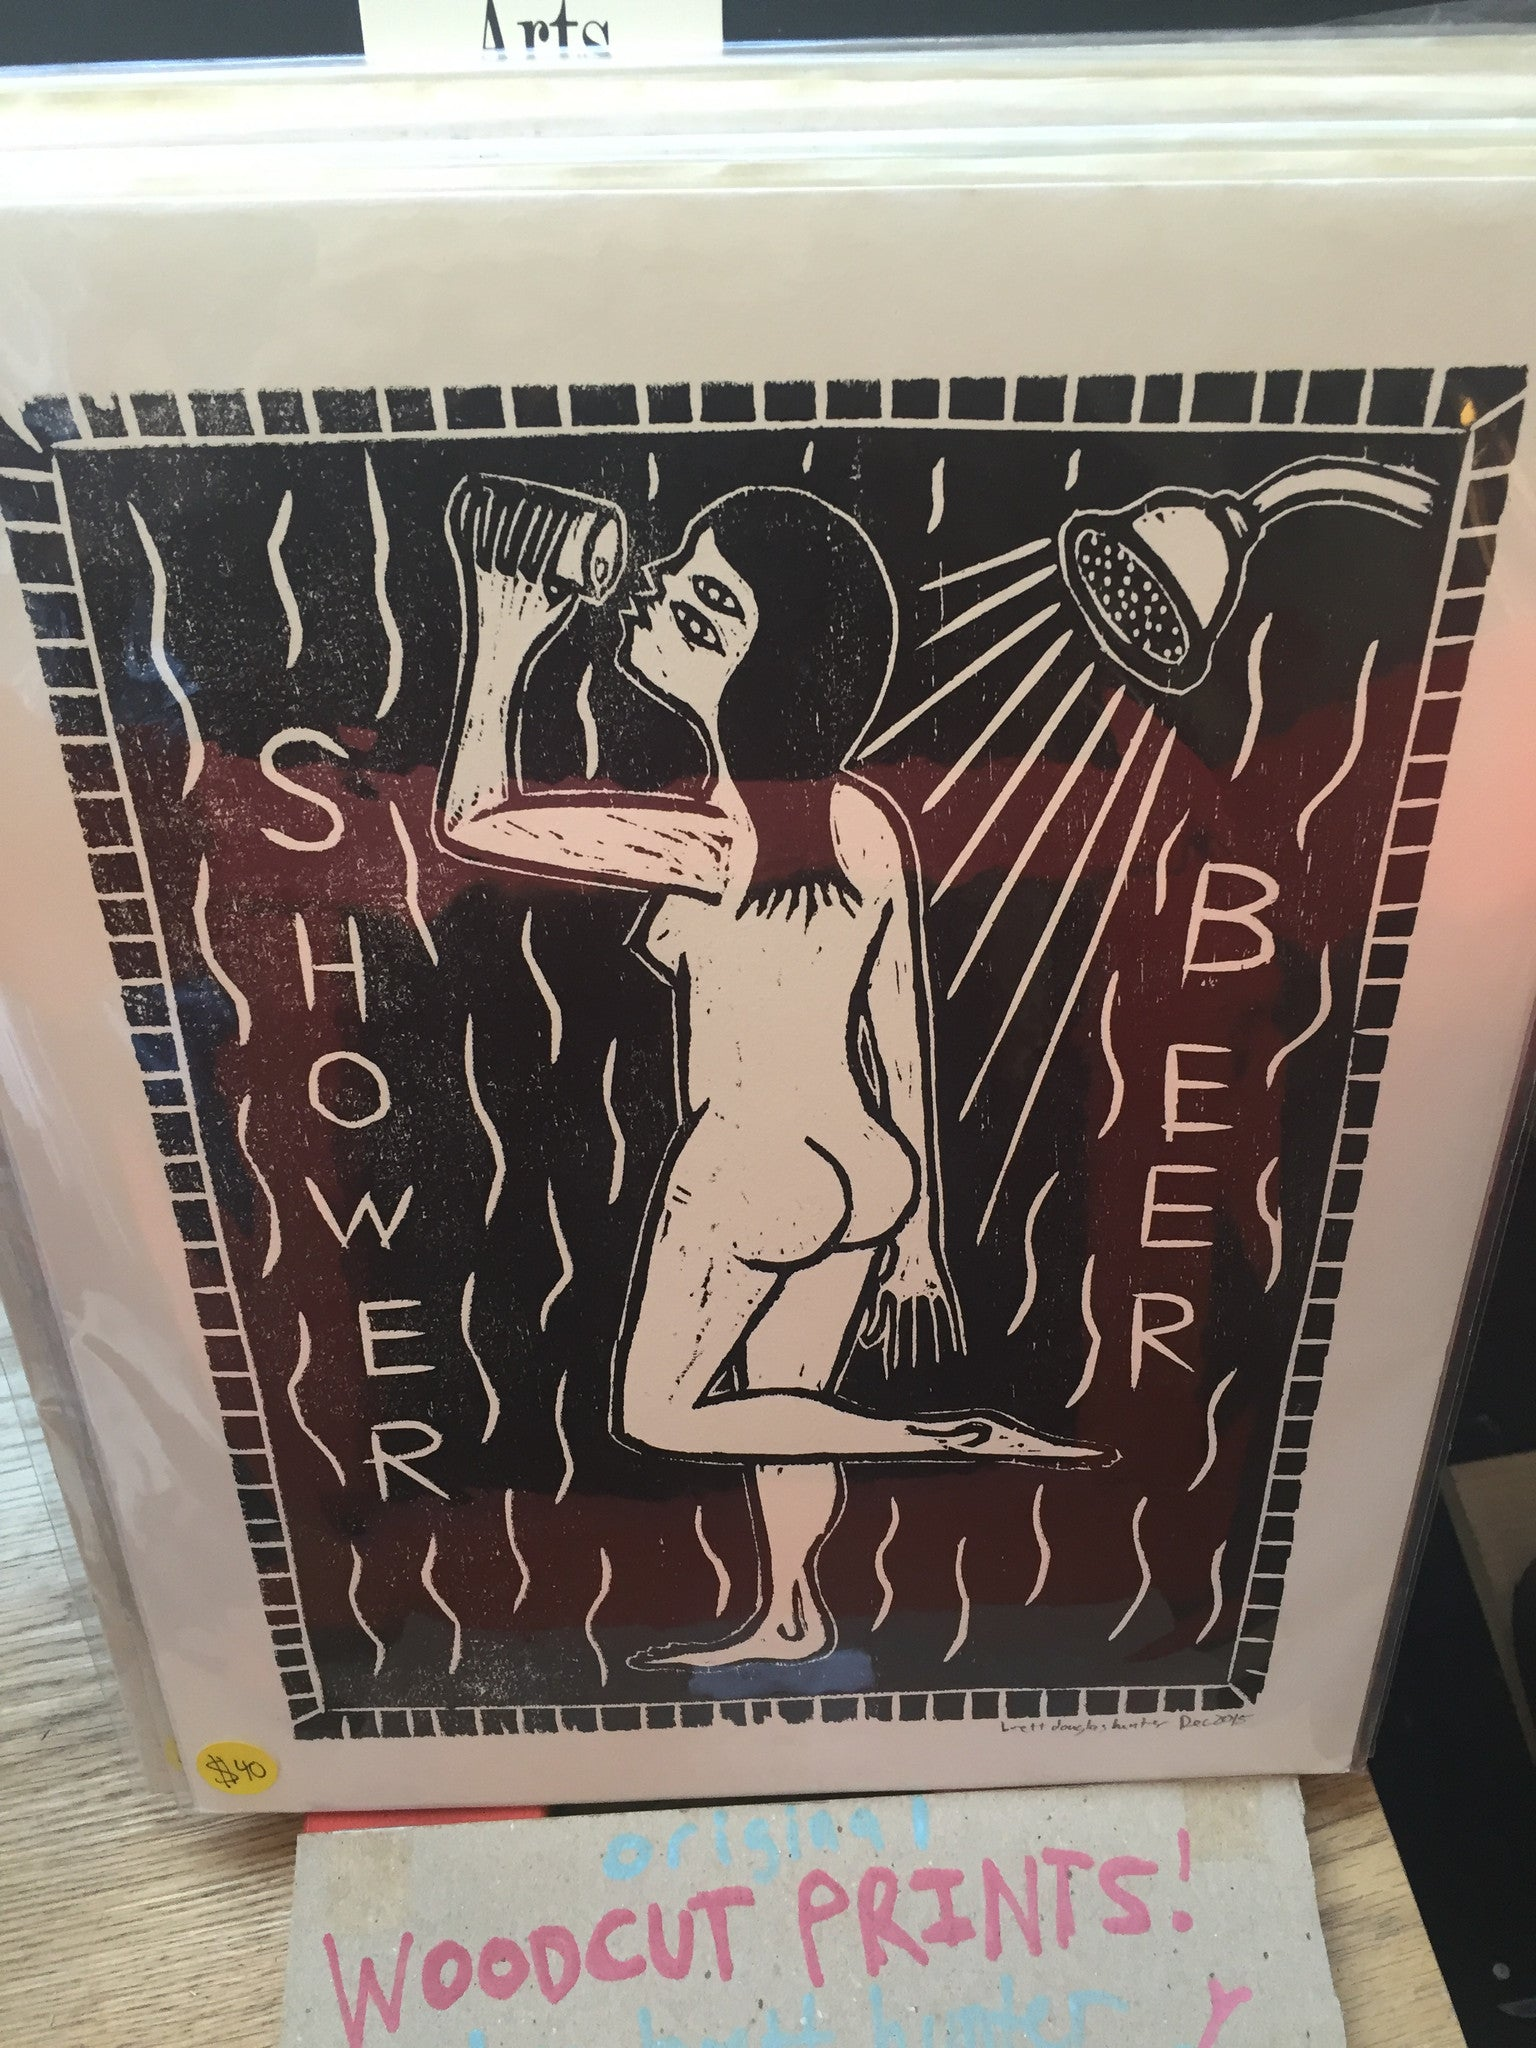 Brett Hunter Wood Cut Prints